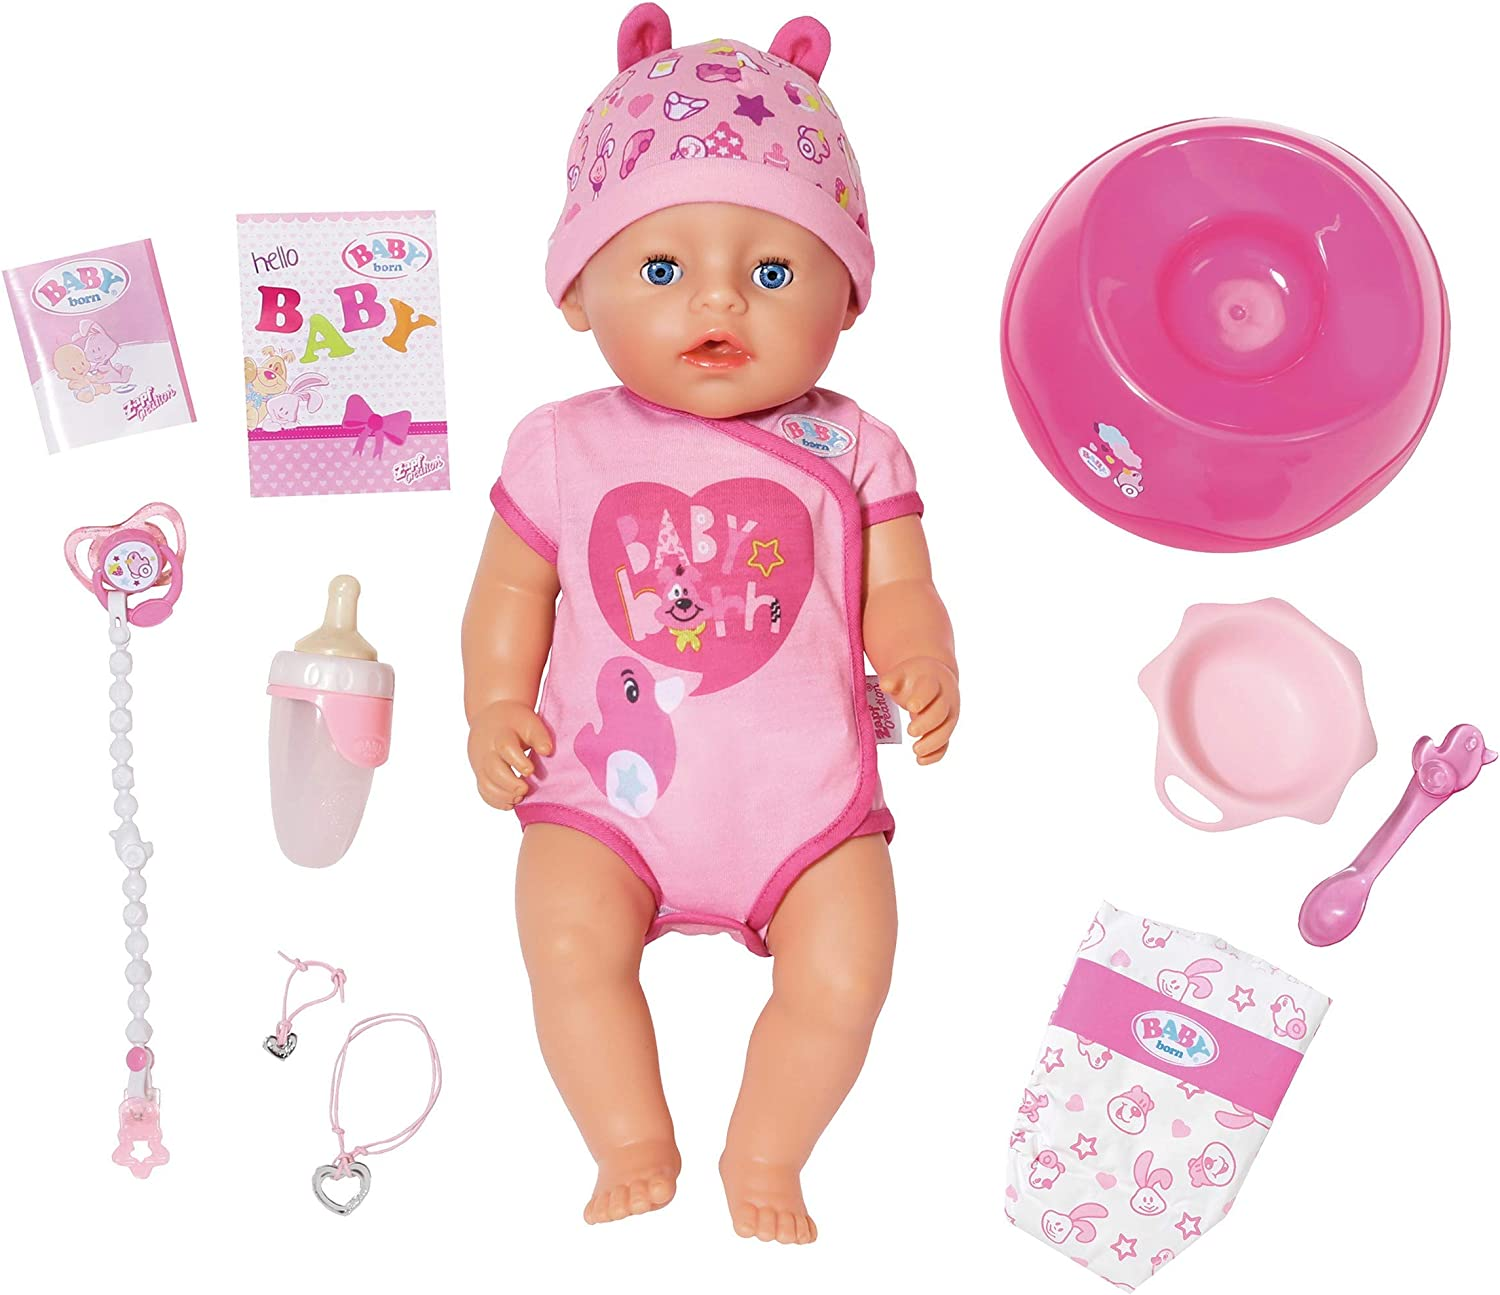 Baby Born Soft Touch Girl 43cm - Muñecas (Rosa, Femenino, Chica, 3 año(s), 430 mm, 330 mm)